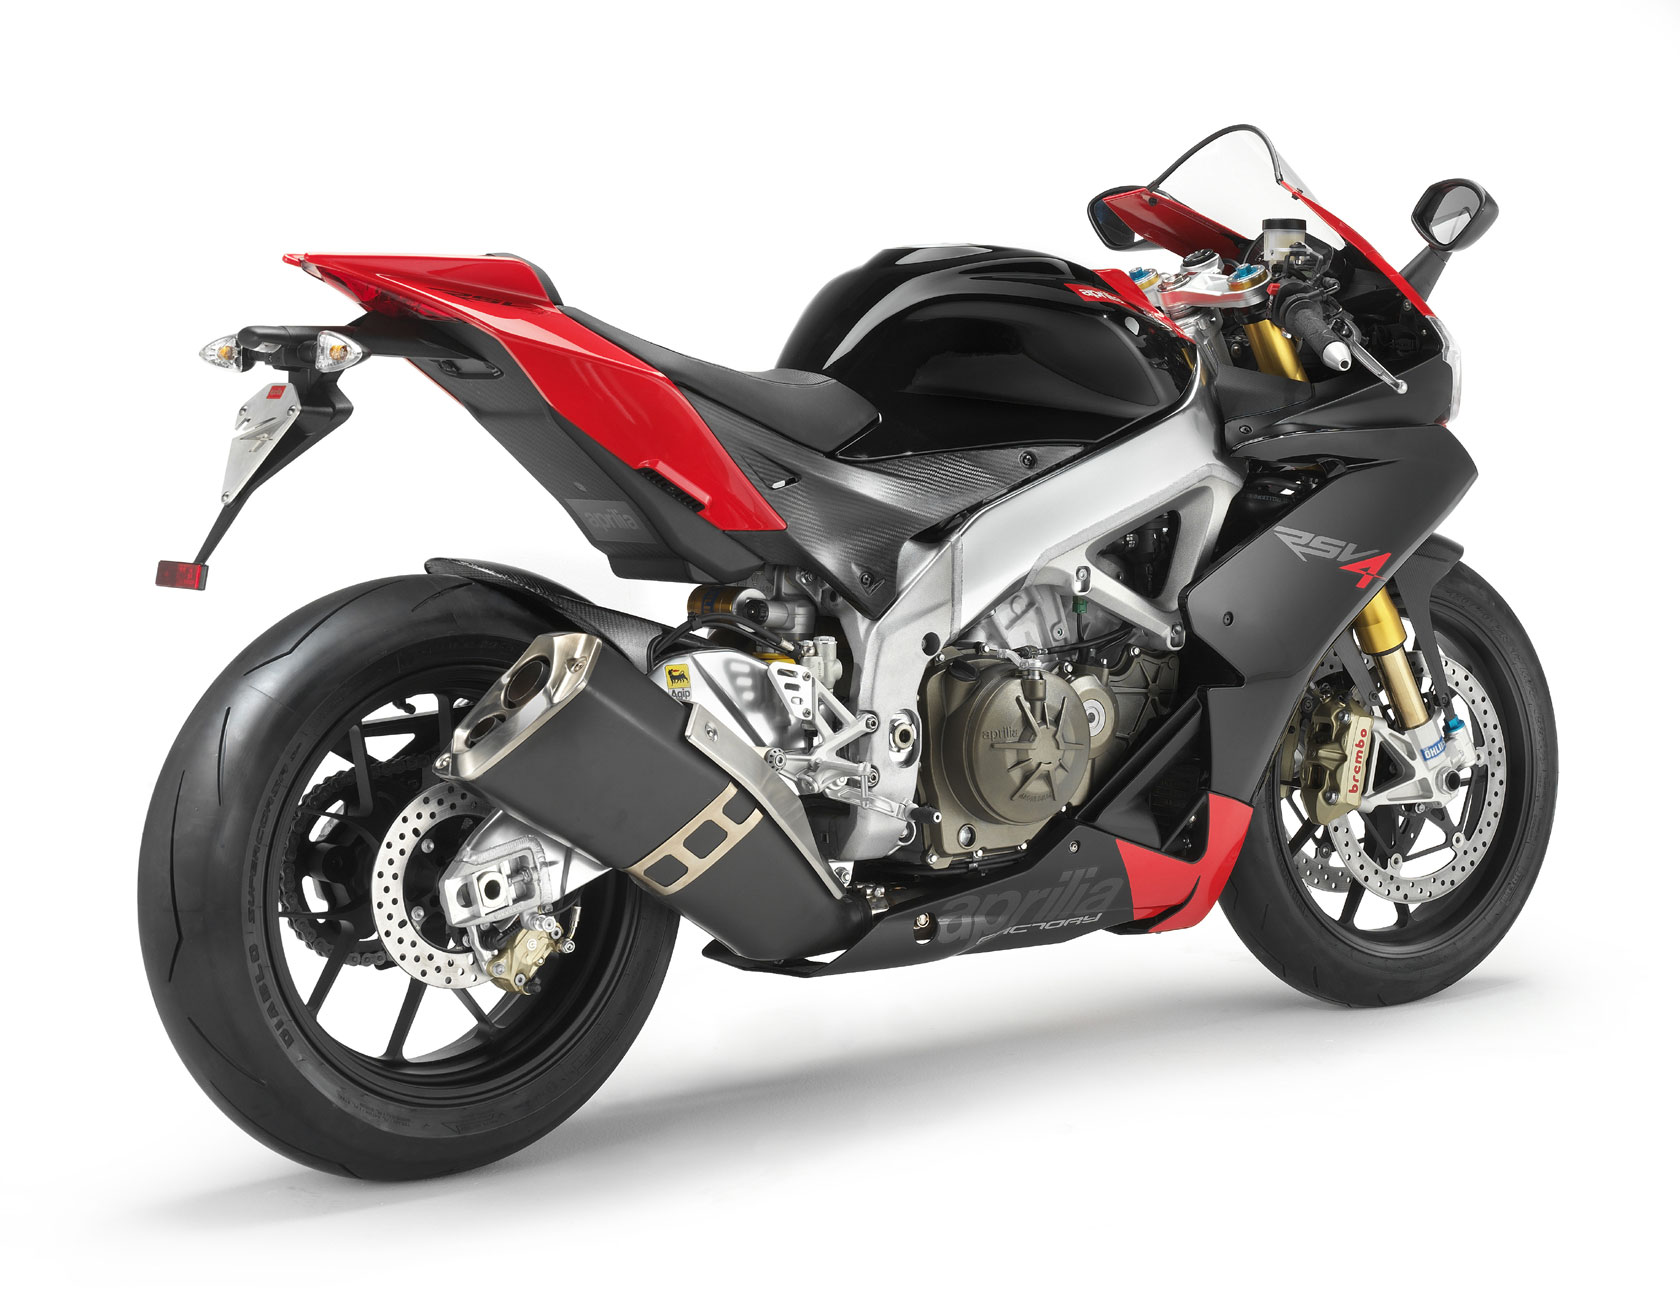 aprilia rsv4 factory aprc se specs 2009 2010 autoevolution. Black Bedroom Furniture Sets. Home Design Ideas